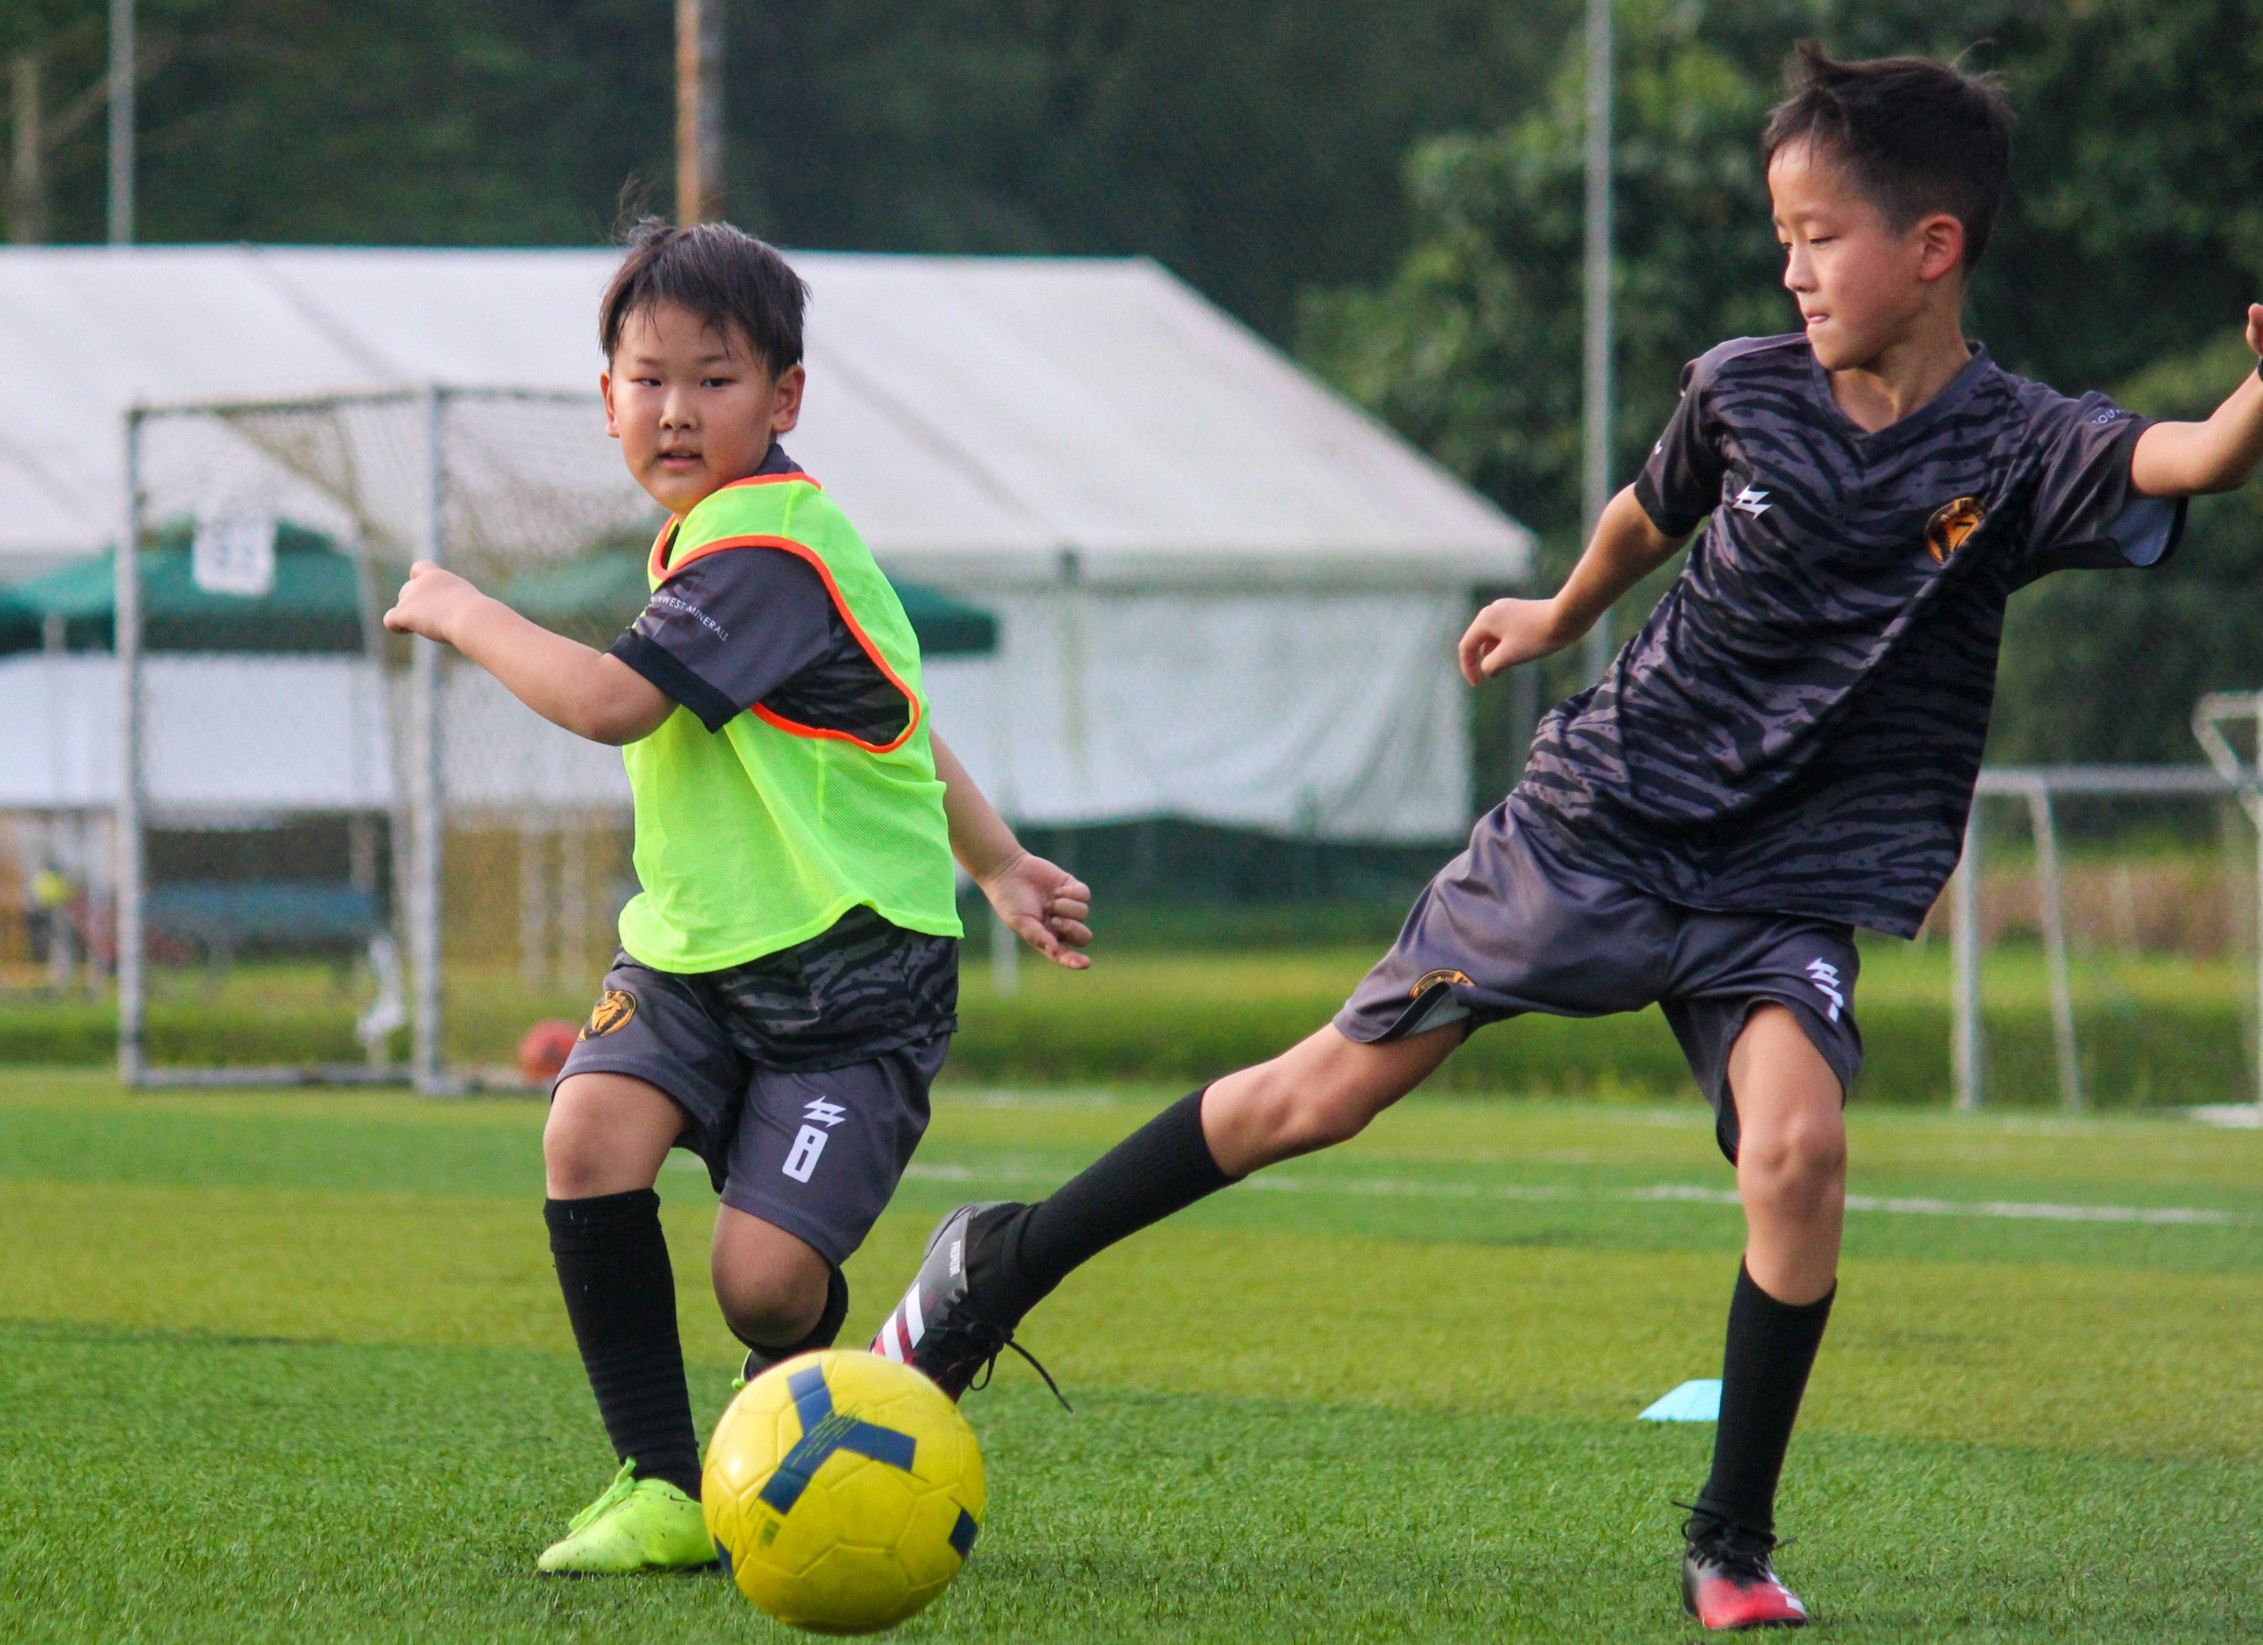 Players Under 9 Years Old